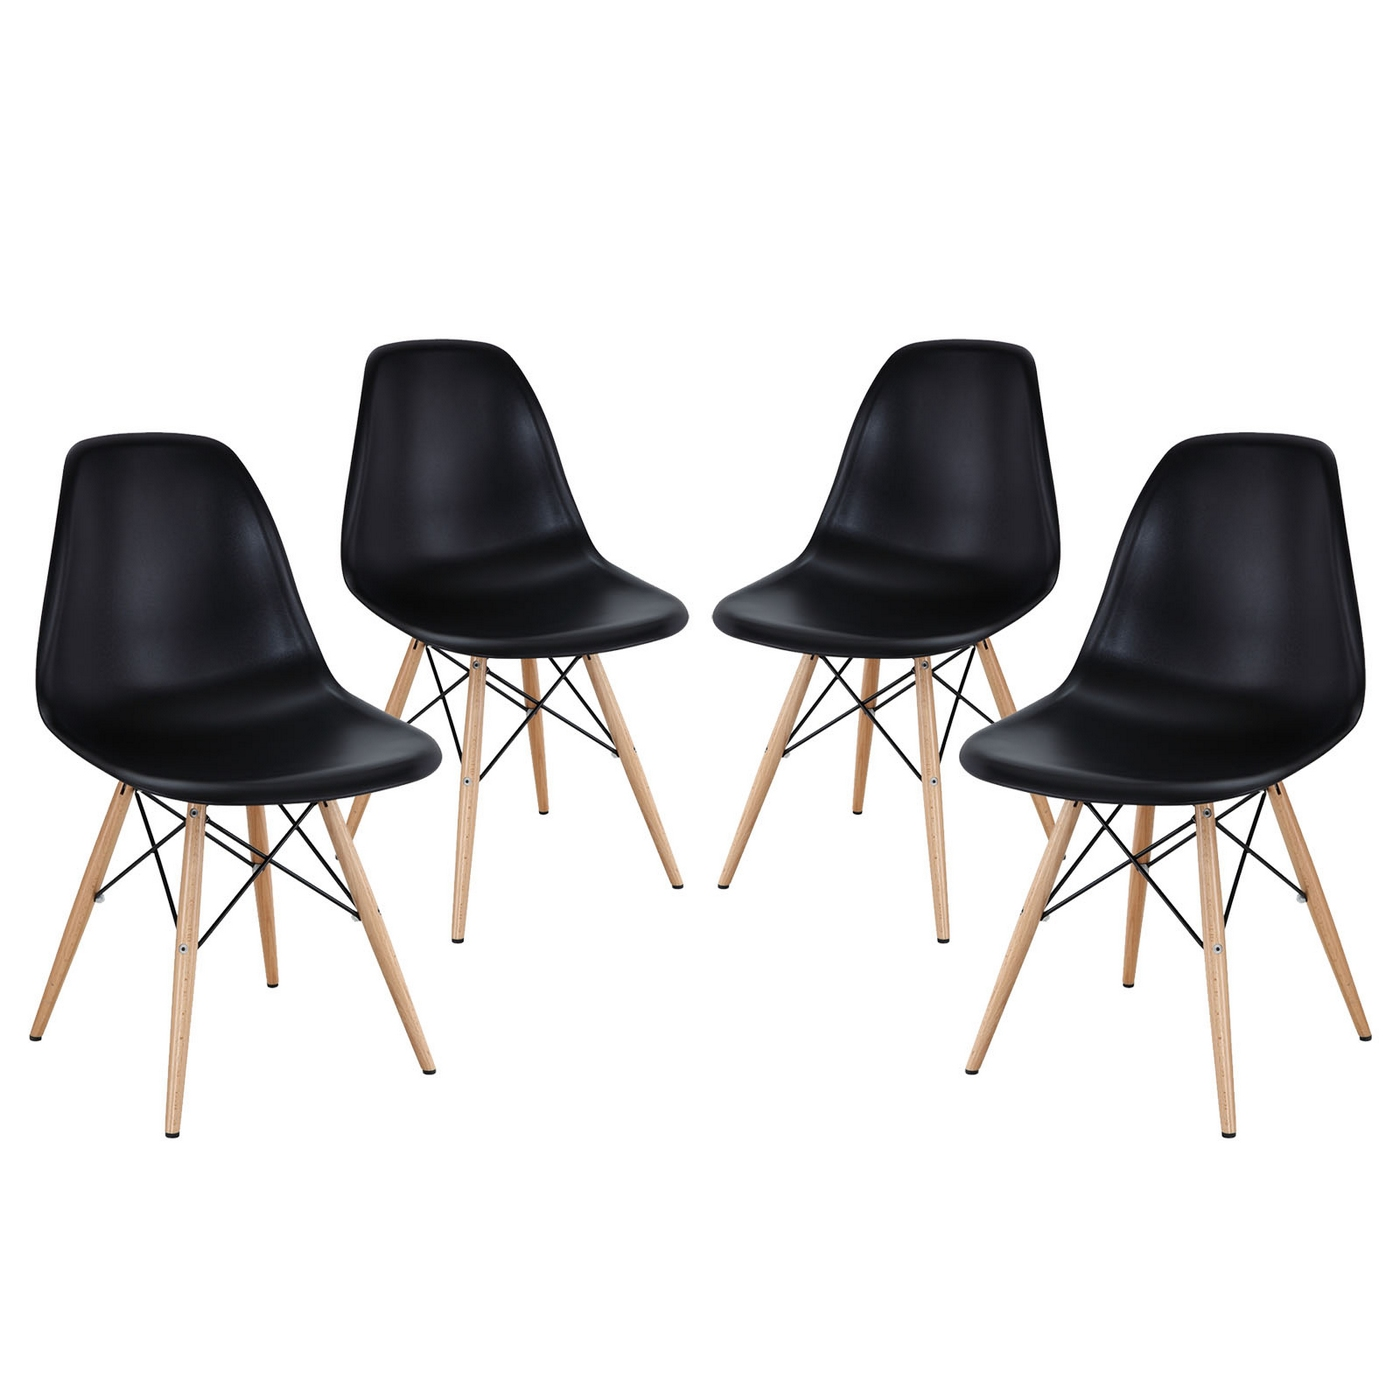 Modern Wooden Dining Room Chairs Pyramid Modern Molded Plastic Dining Side Chairs With